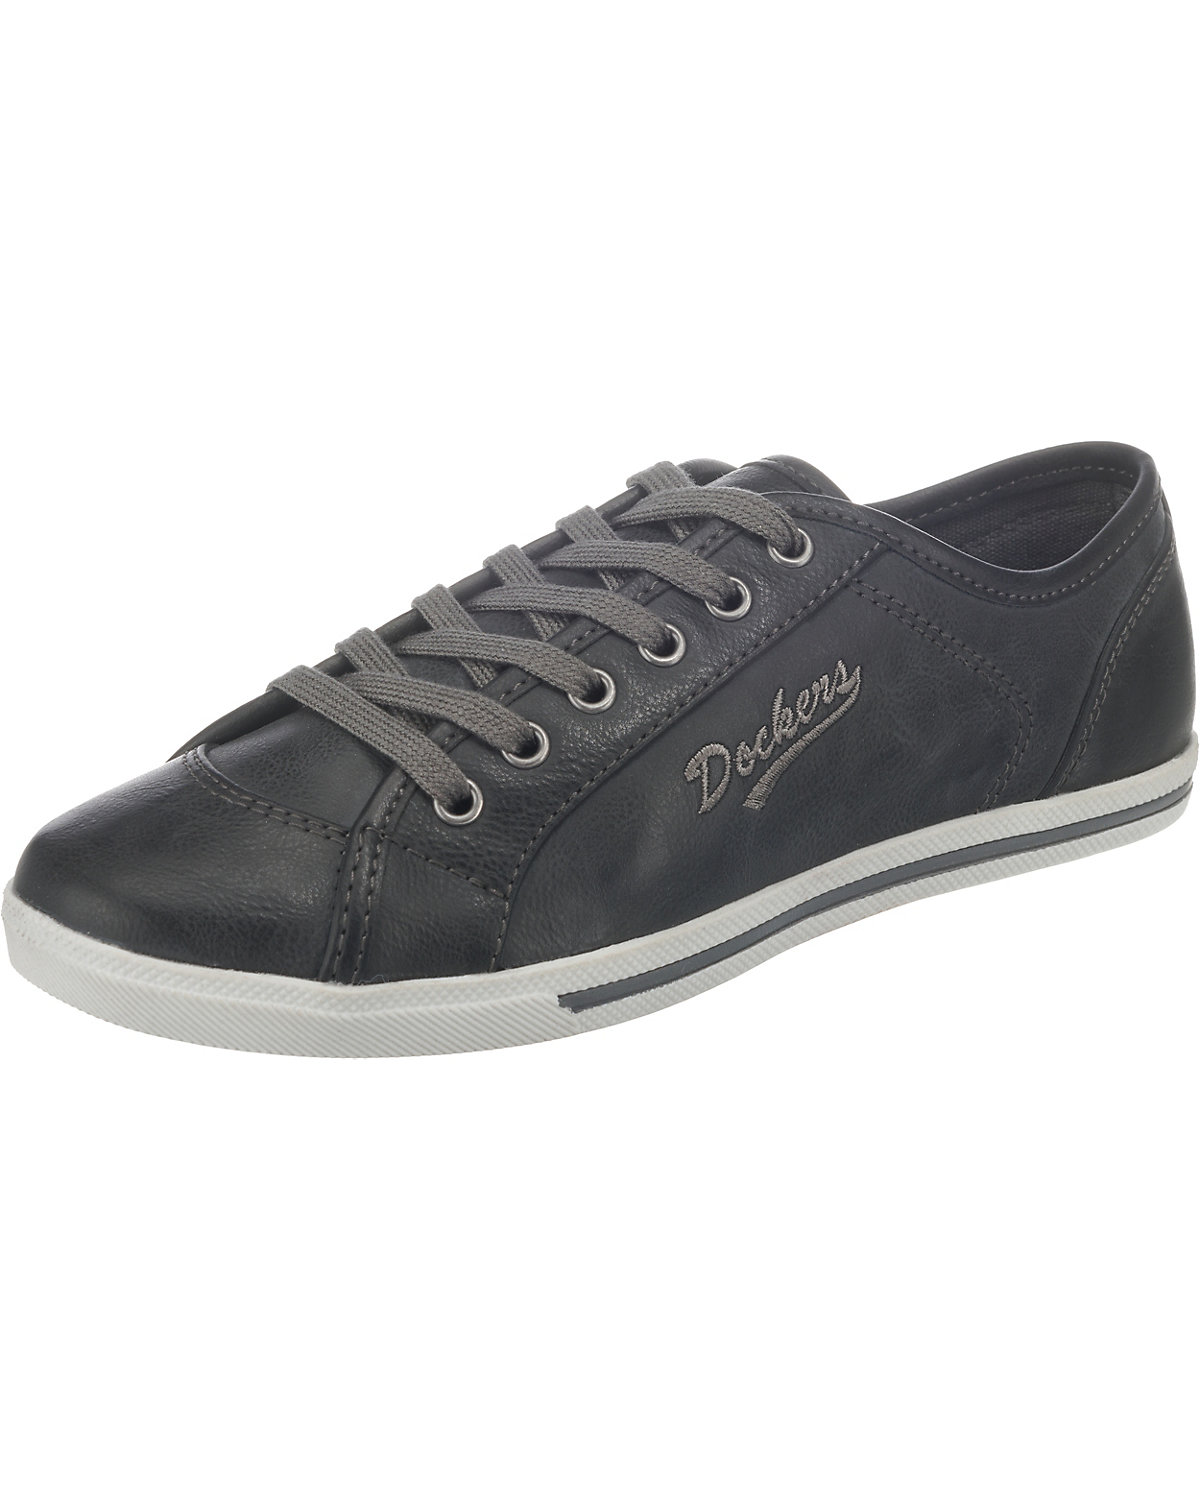 Dockers by Gerli, Sneakers Low, schwarz